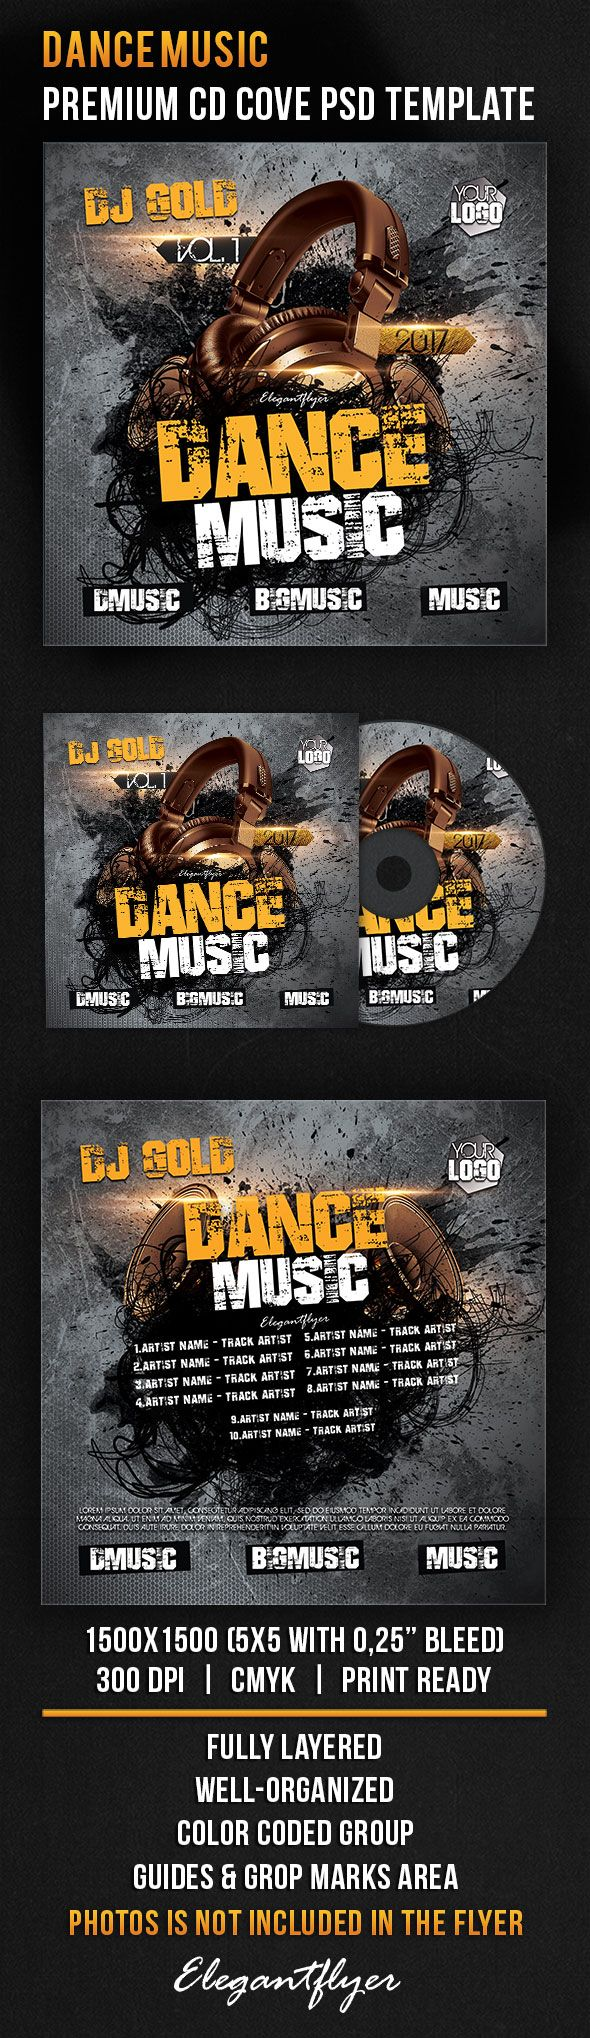 Dance Music – Premium CD Cover PSD Template